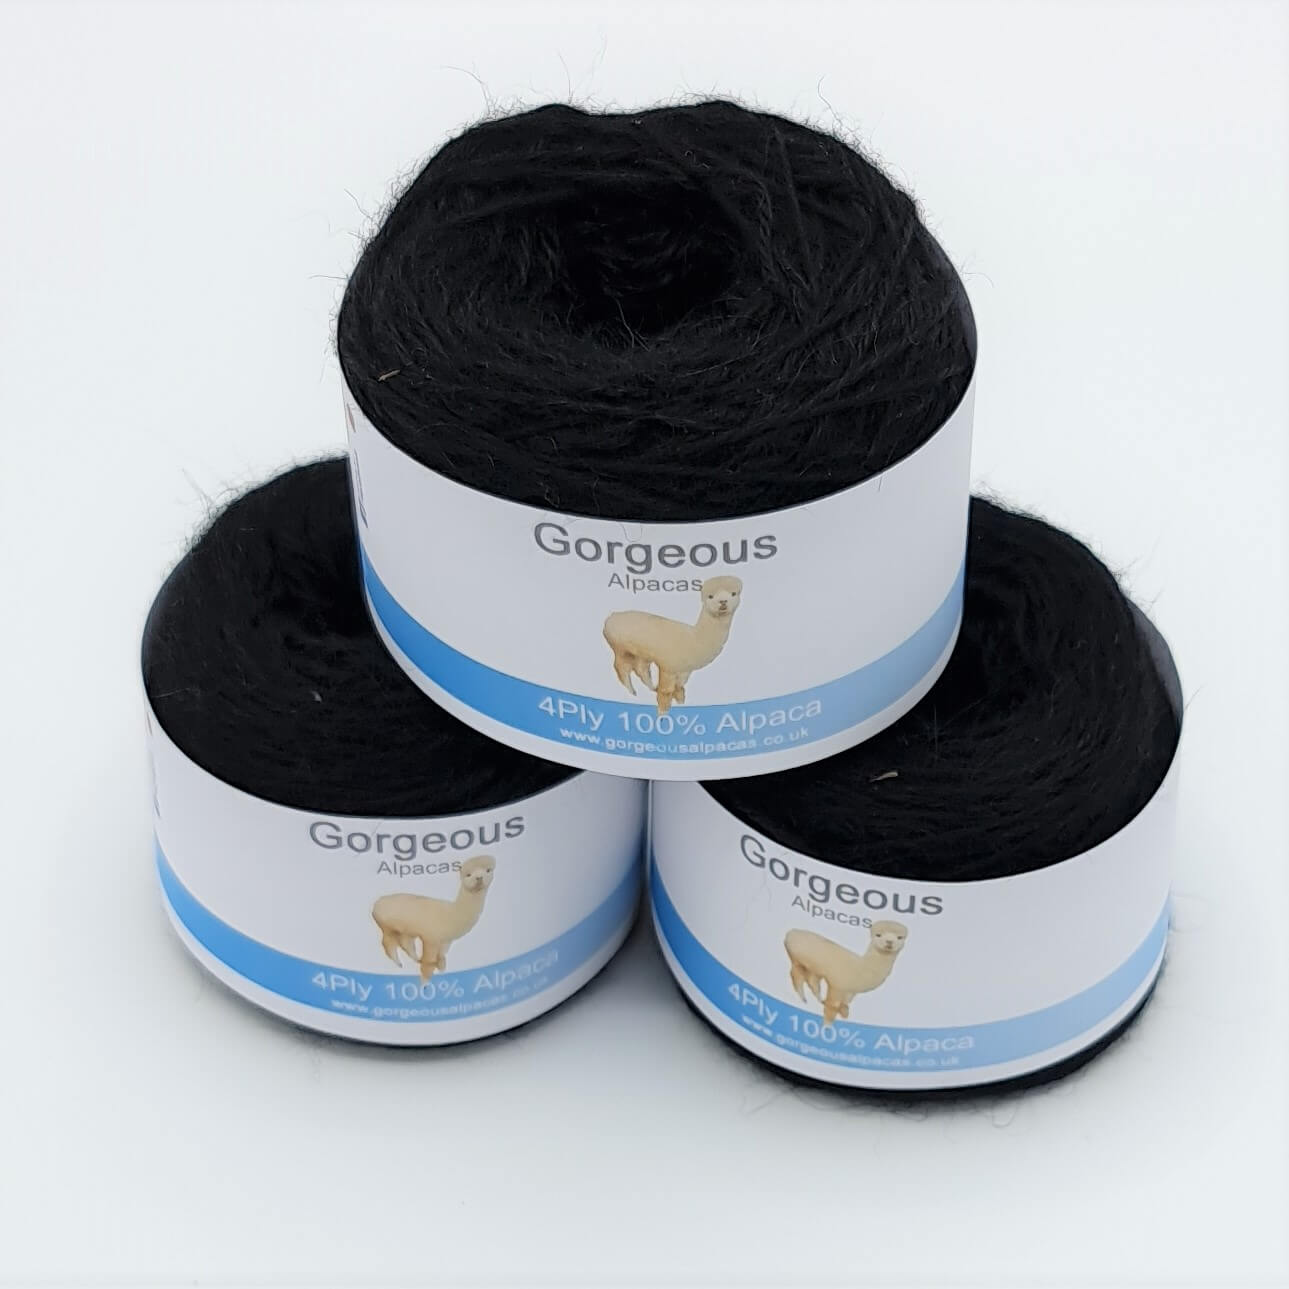 100% Alpaca Yarn - 4Ply - 50g - Gorgeous Alpacas